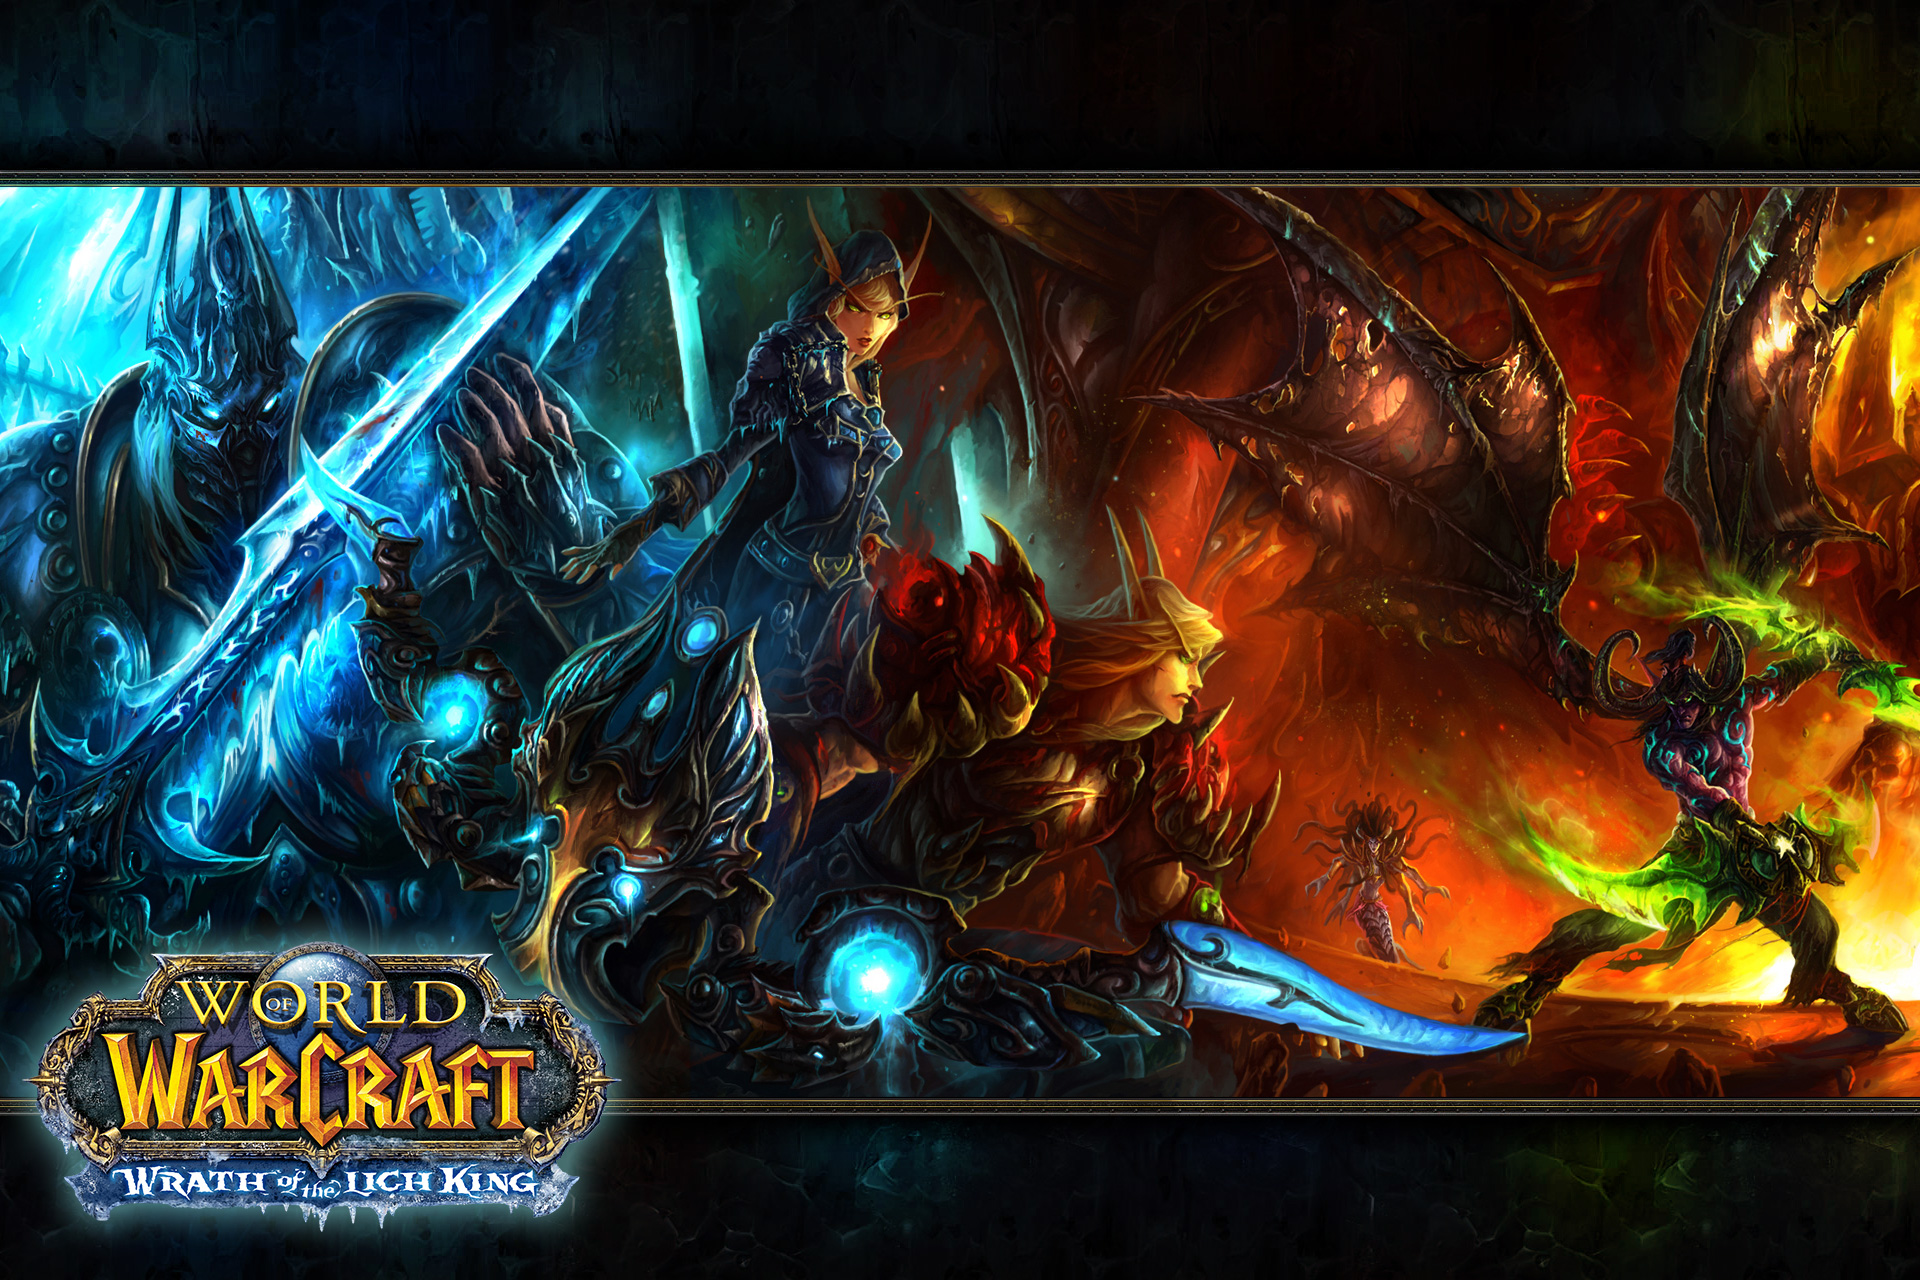 World of Warcraft wallpaper 32 | WallpapersBQ